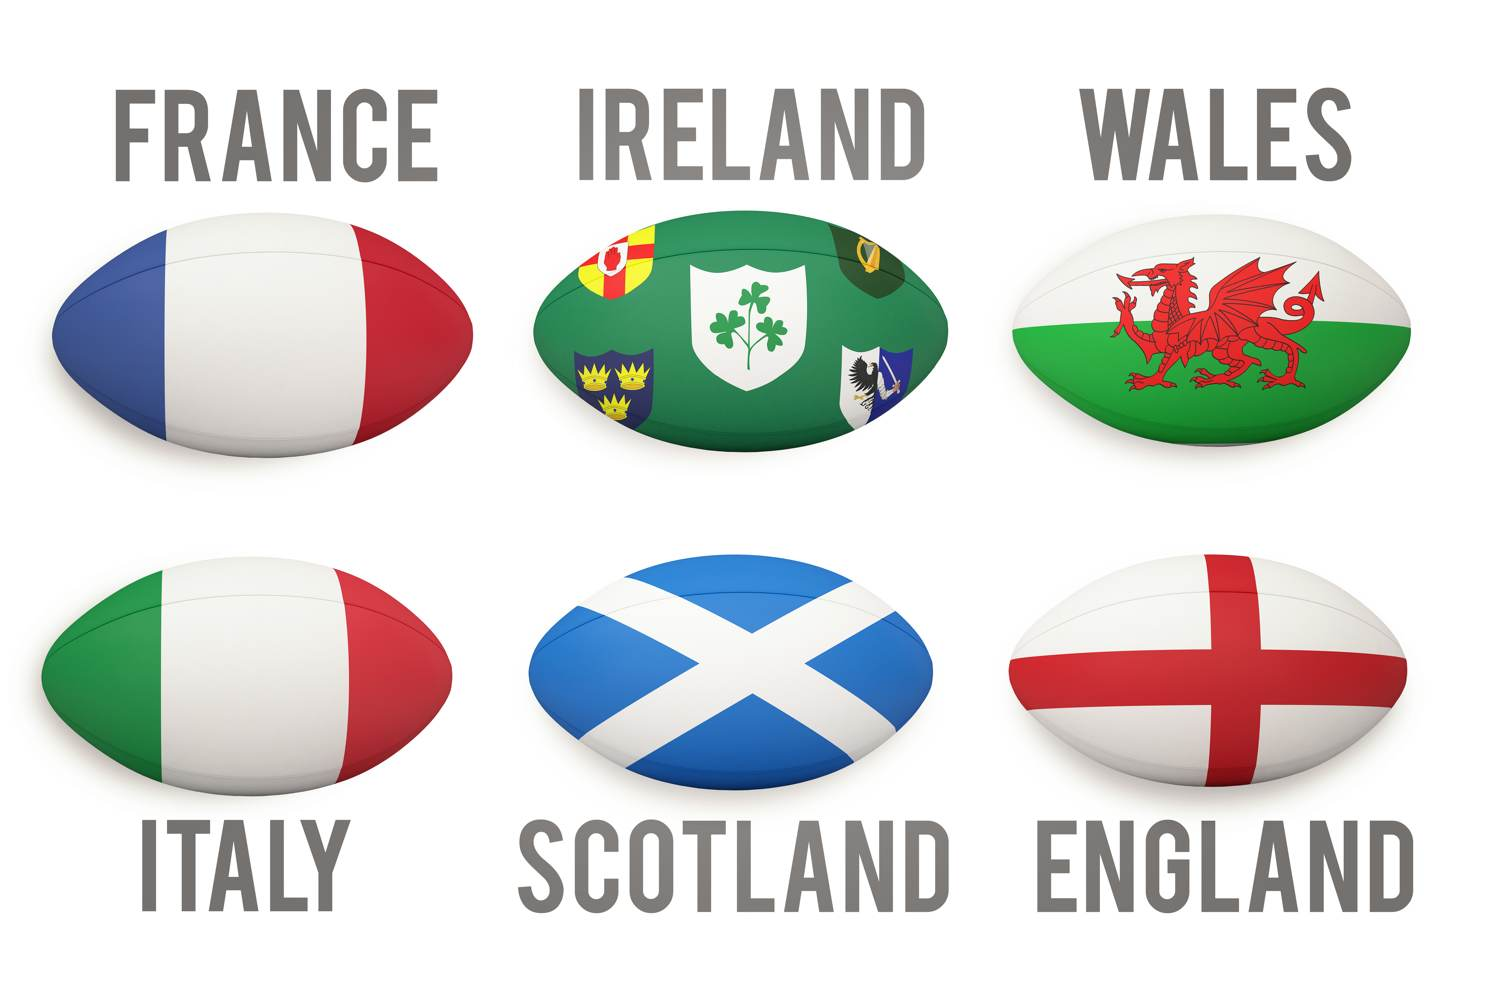 Rugby balls with Six Nations participants flags on them